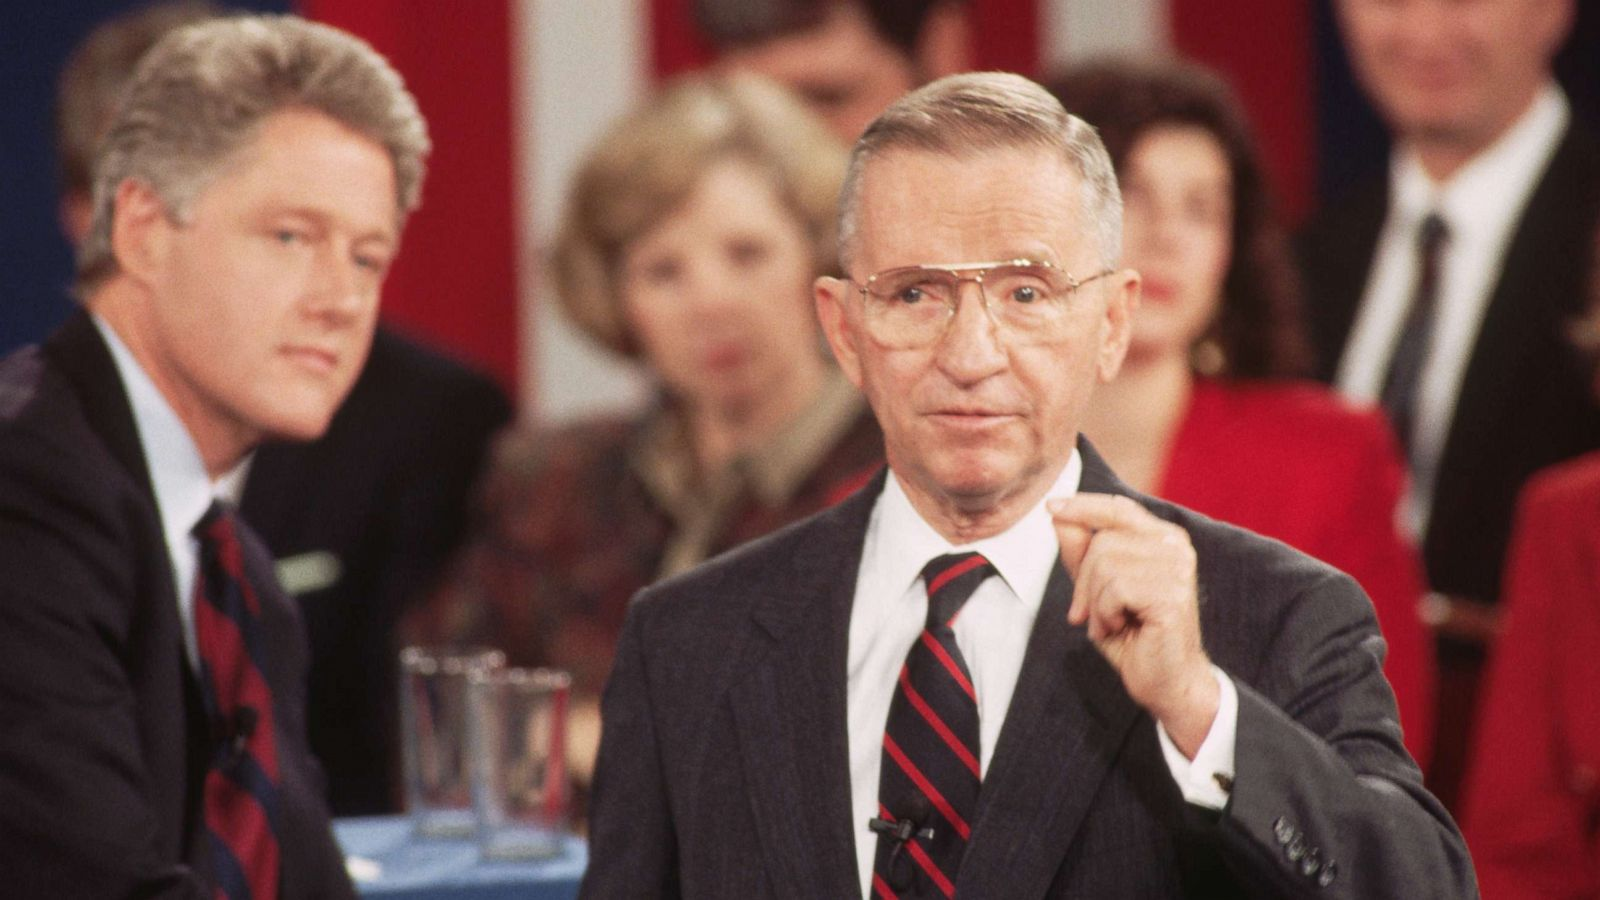 Ross Perot, former presidential candidate, dies at age 89 - ABC News